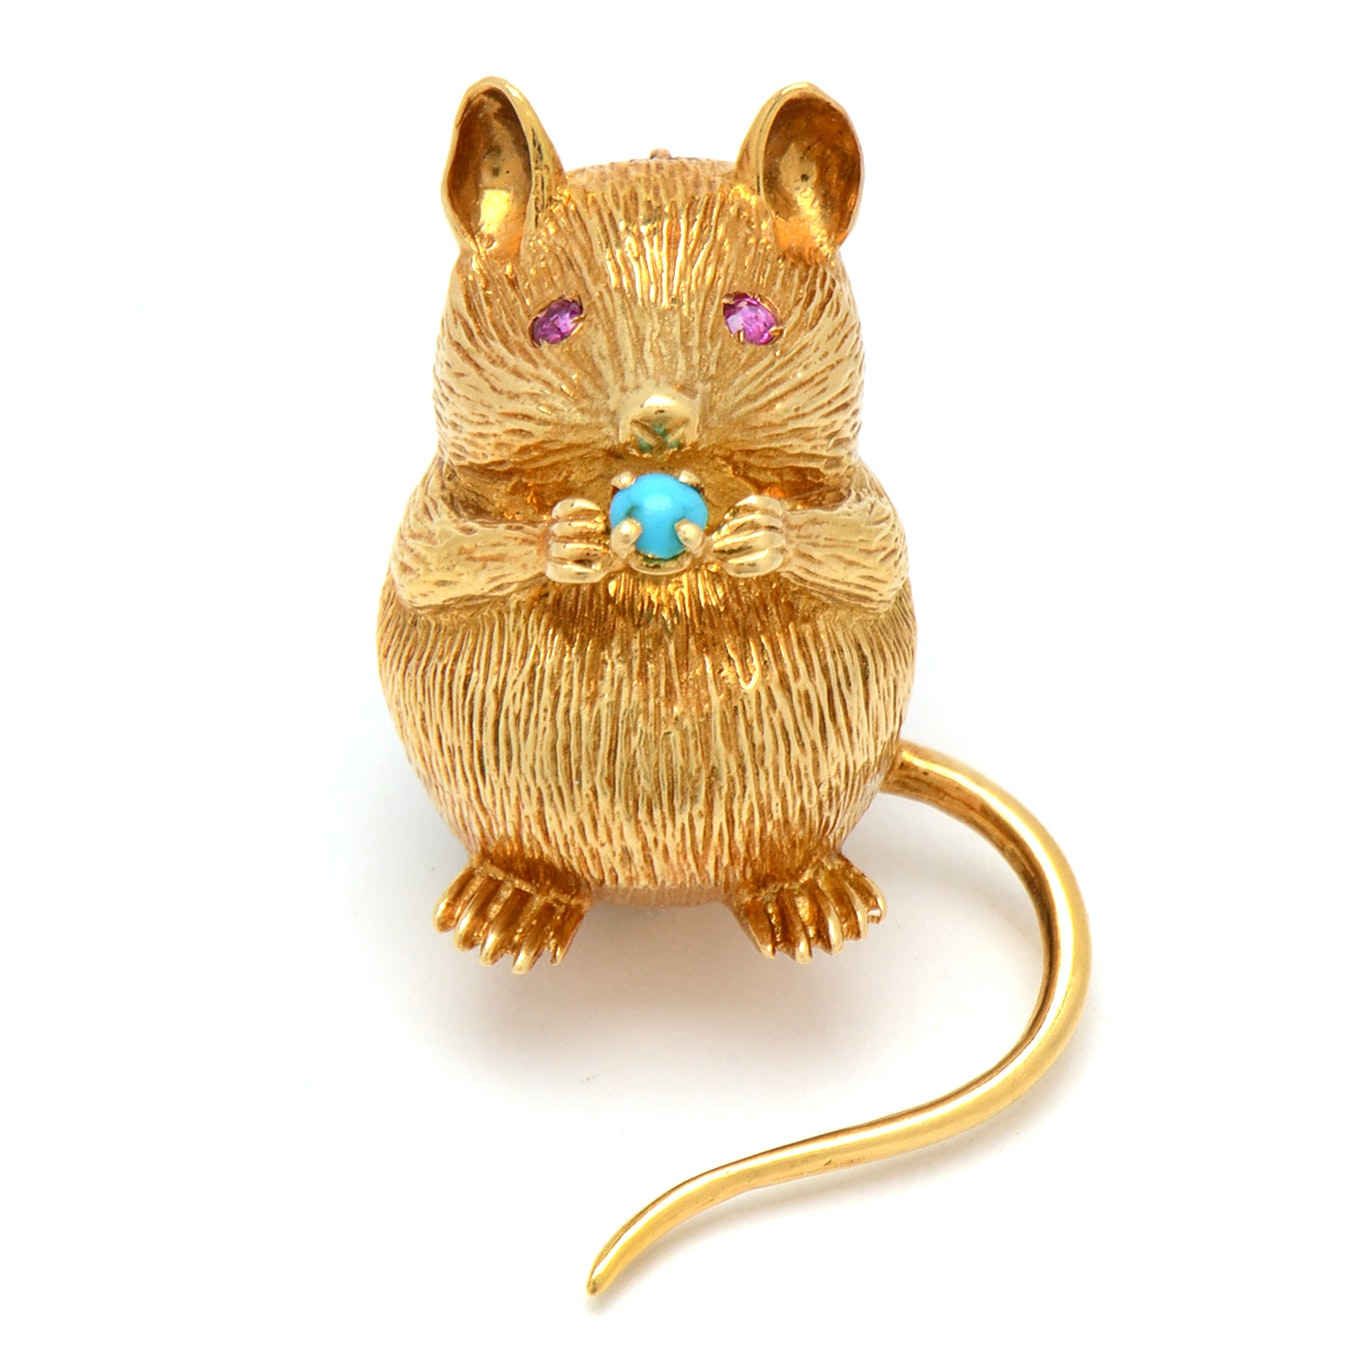 Tiffany & Co. 18K Yellow Gold Mouse Brooch